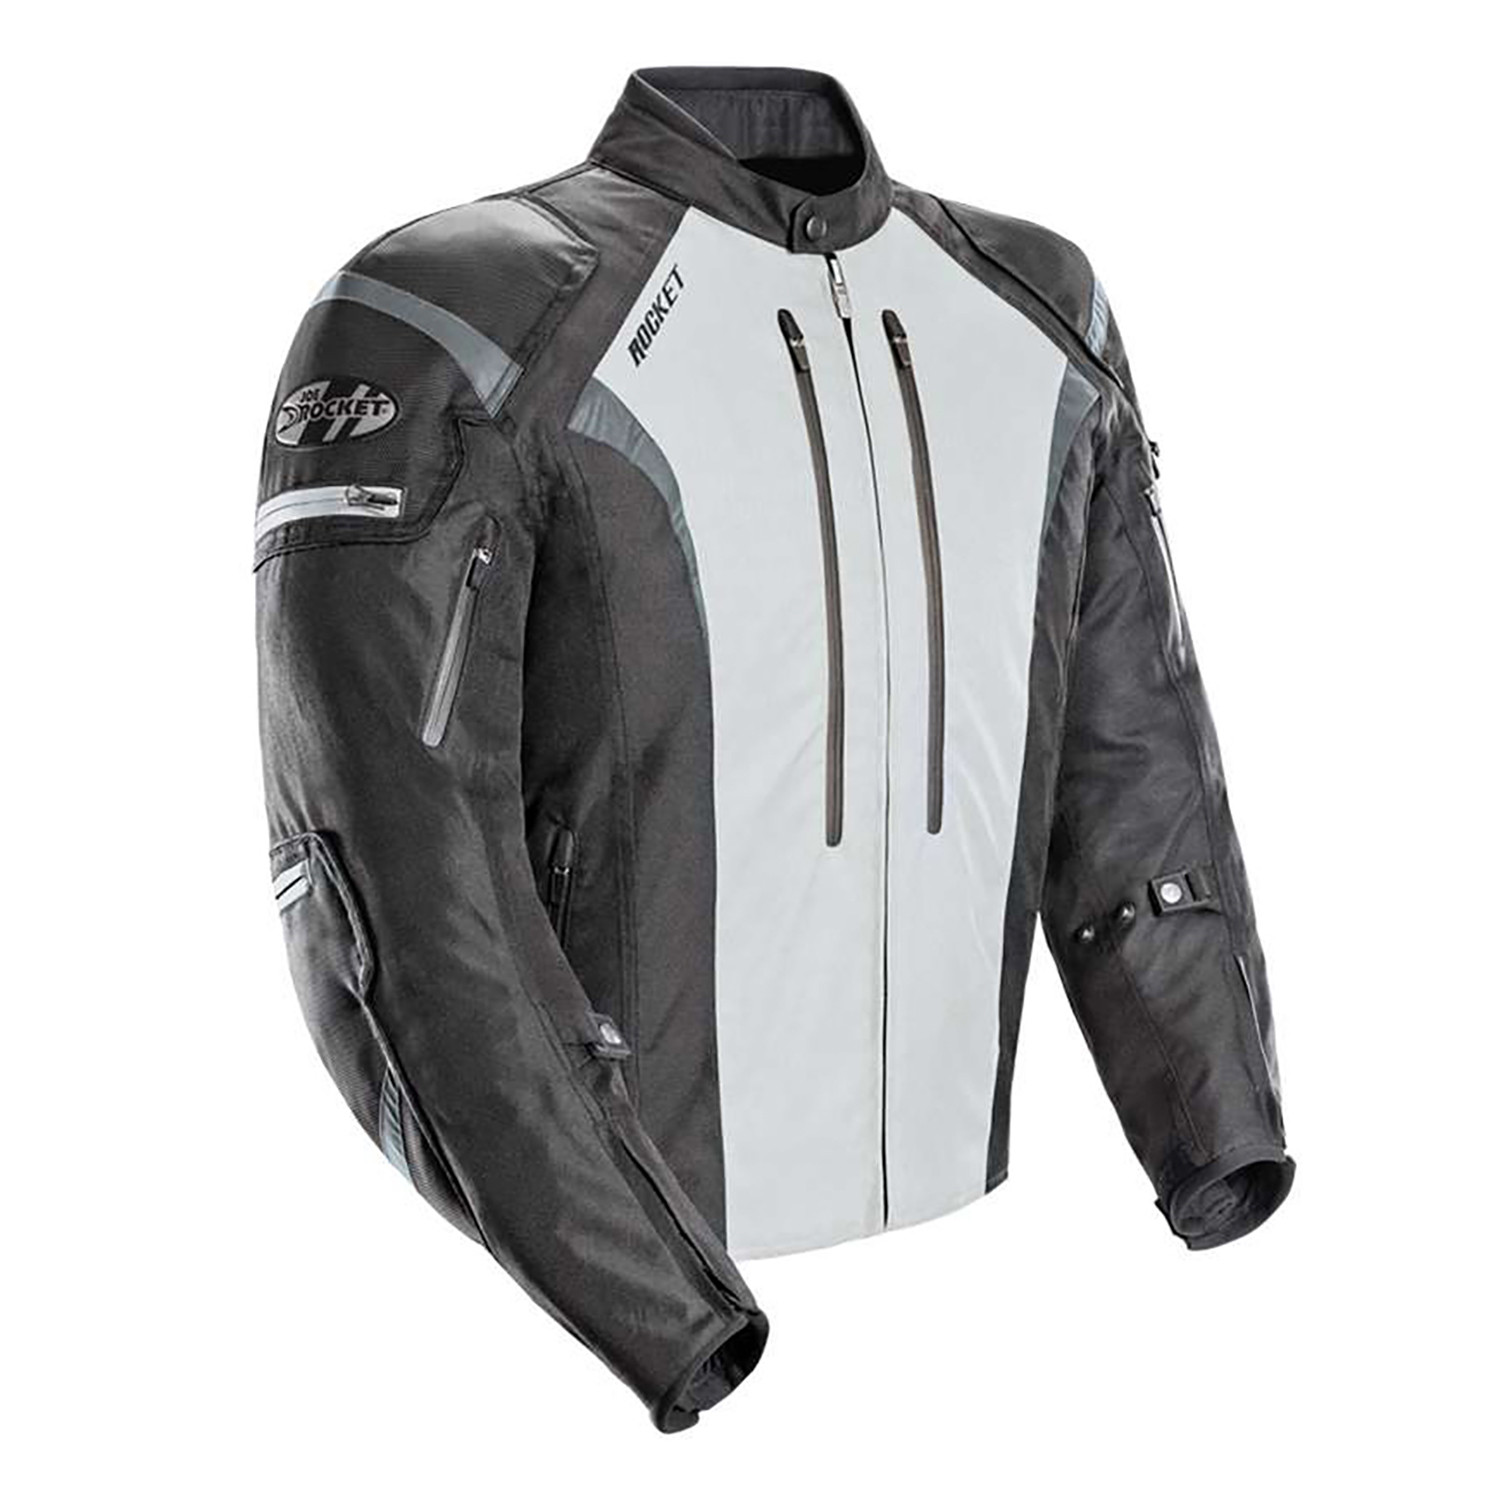 Campera Joe Rocket Atomic 5.0 Negro Gris